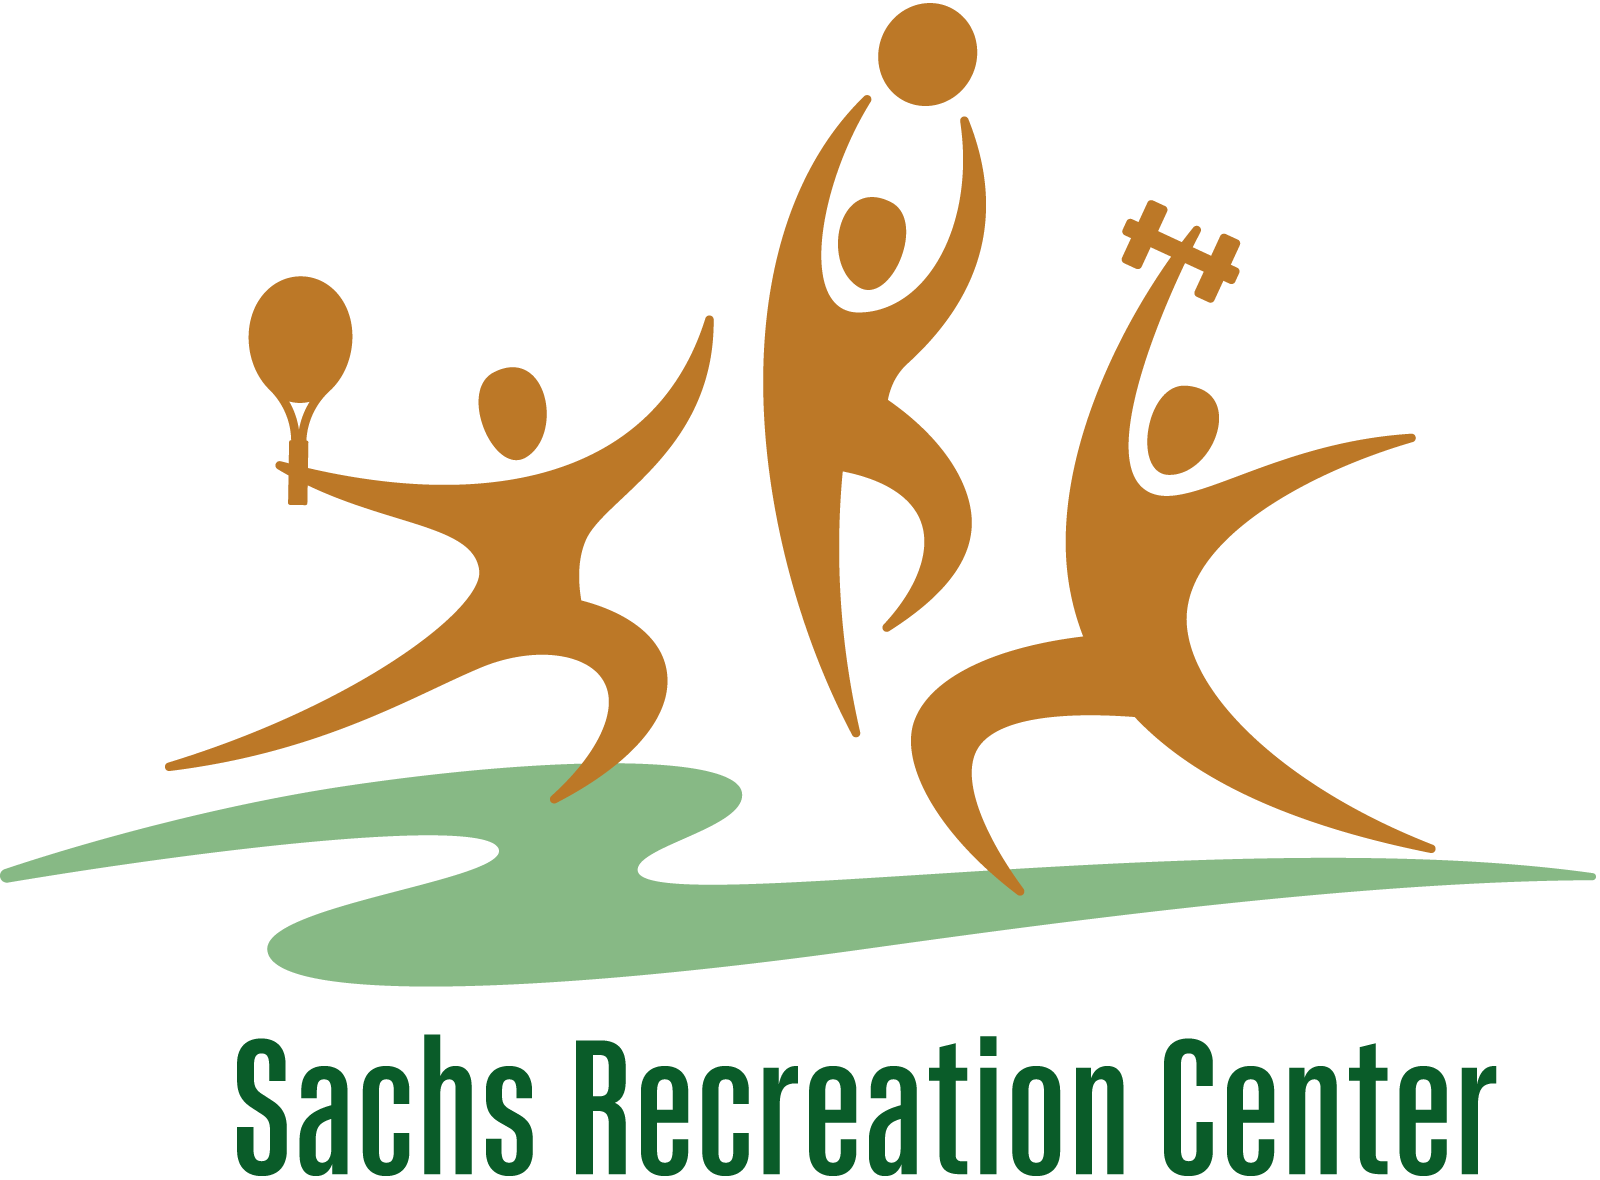 Sachs Recreation Center